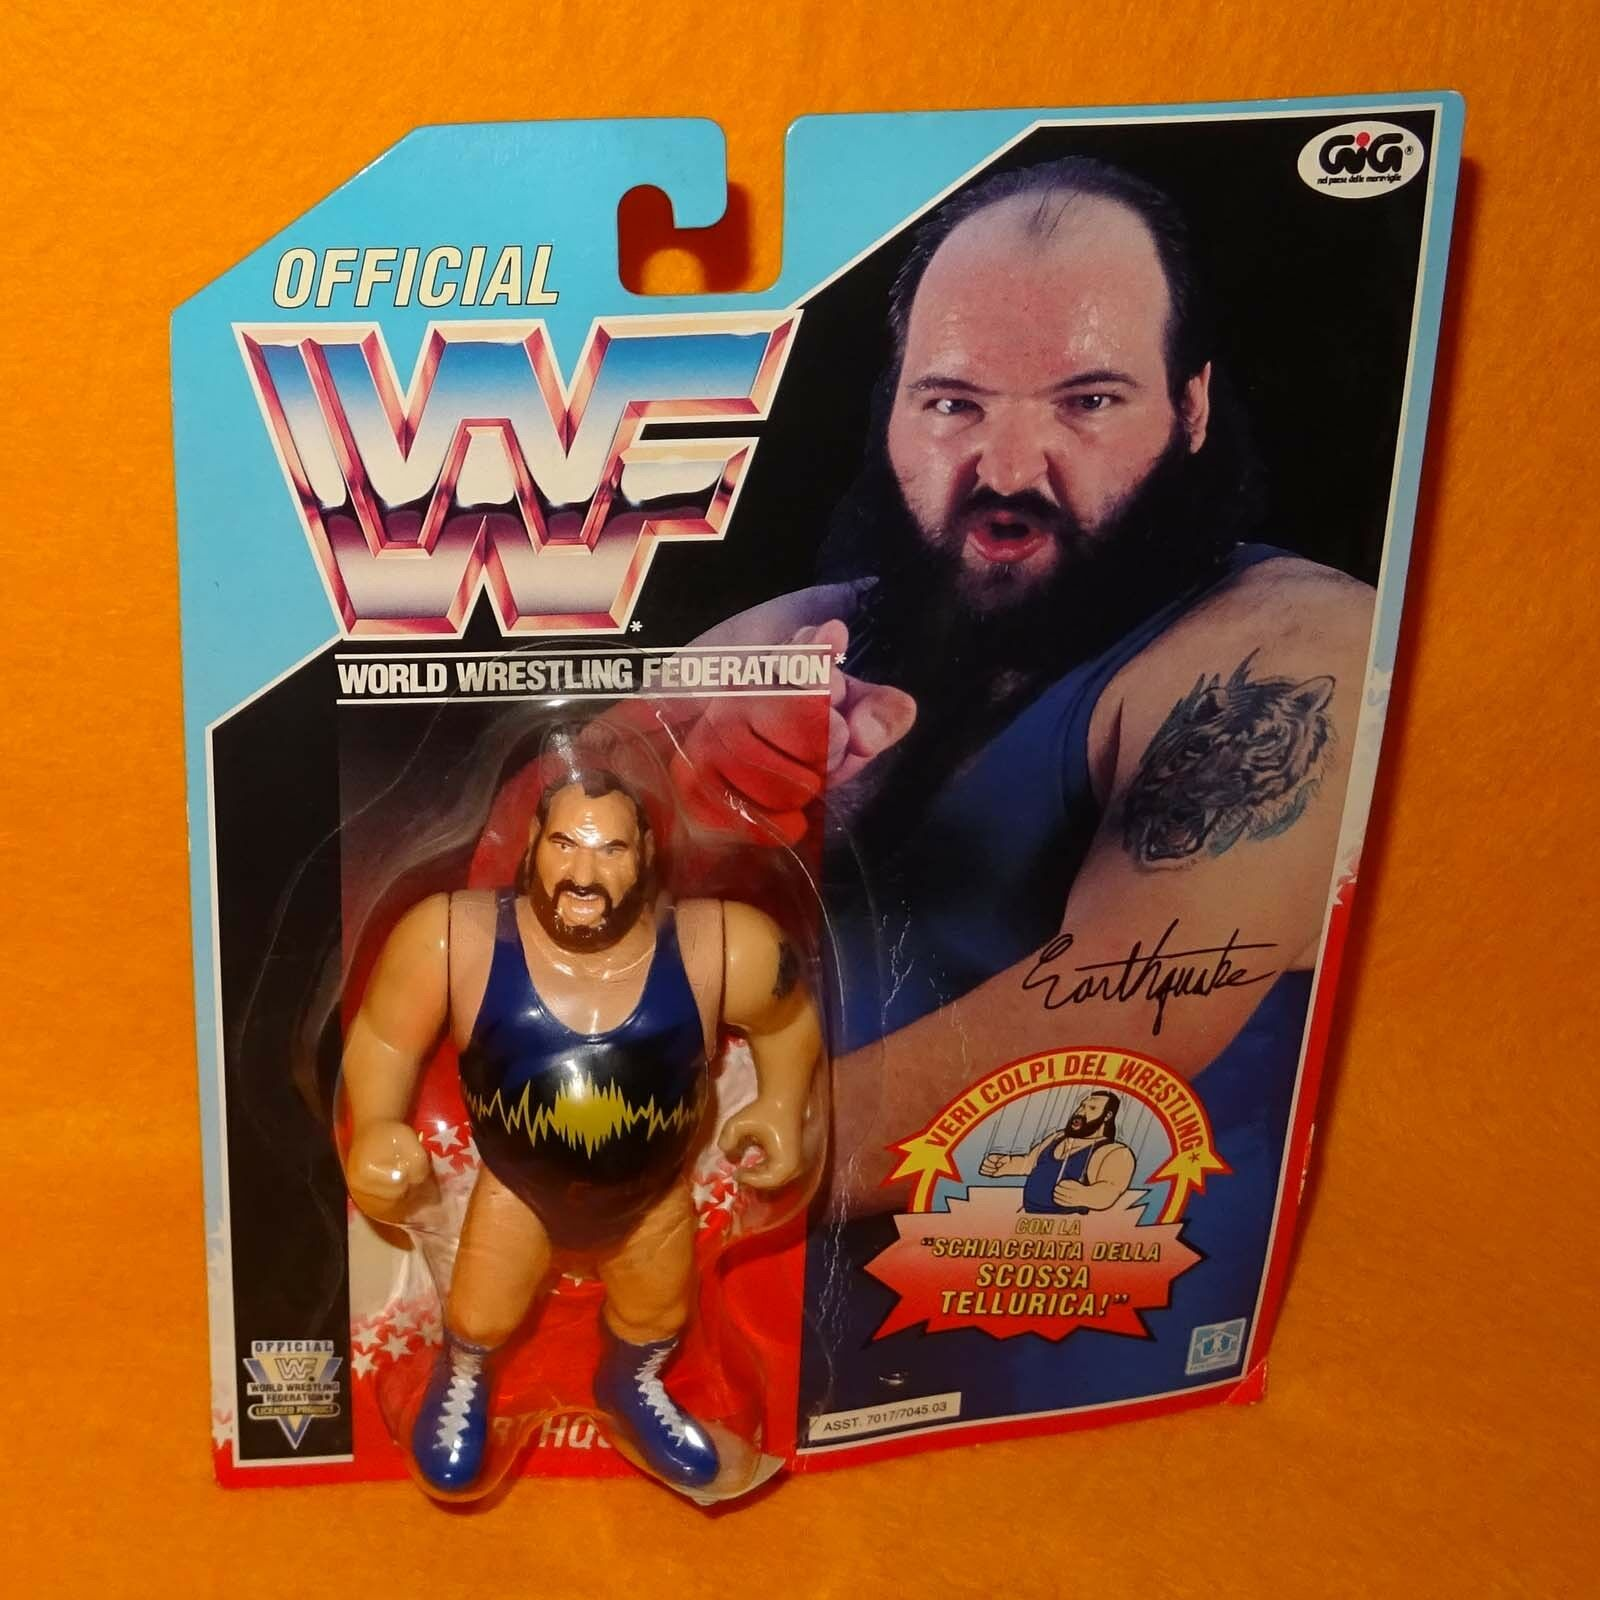 VINTAGE 1992 90s HASBRO GIG WWF WRESTLING SERIES 3 EARTHQUAKE FIGURE MOC CARDED